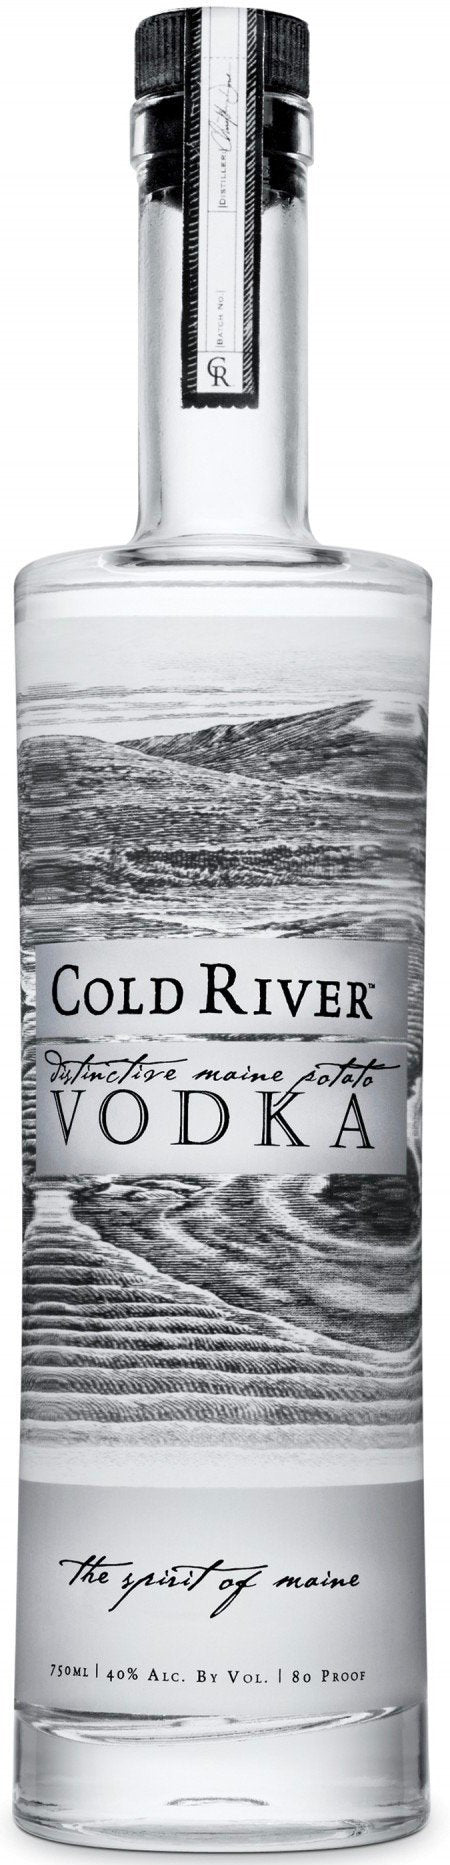 Cold River Vodka 750ml